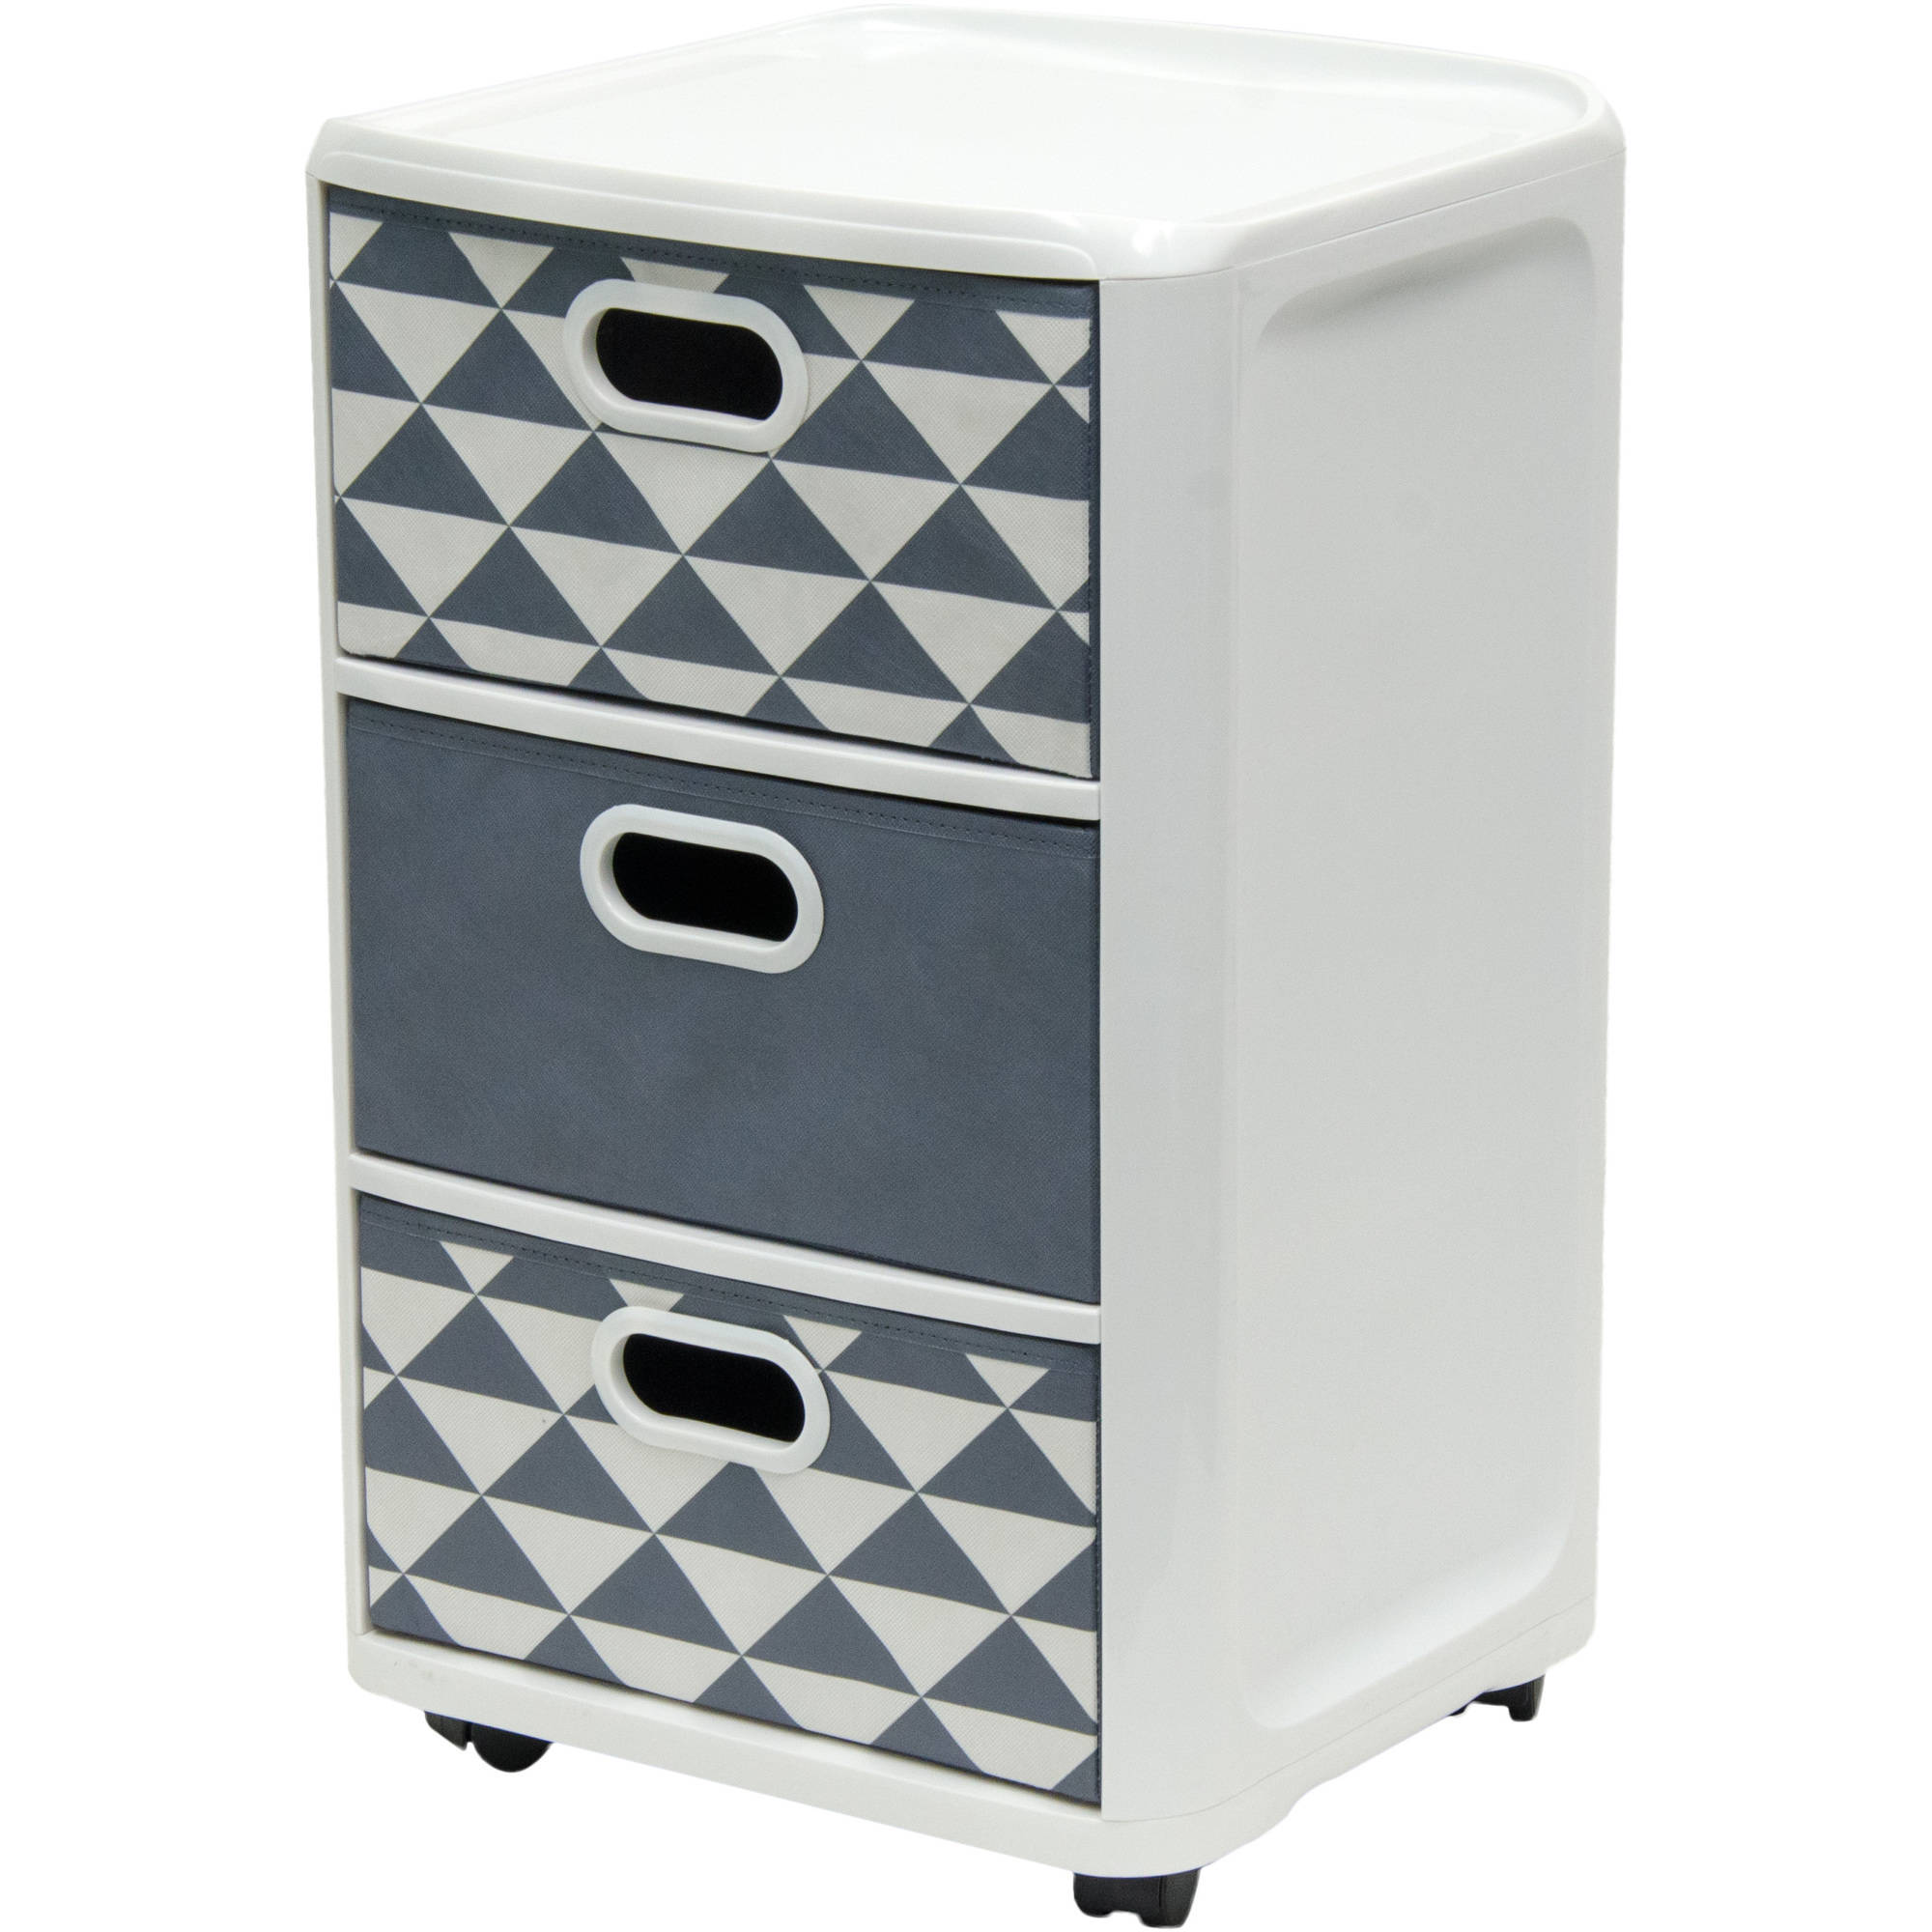 Home Logic 3 Fabric Drawer Storage Cart, Grey Geo. West Elm Office Desk. Mixing Desk Furniture. Sevice Desk. Utility Cart With Drawer. Desk Metal. Grey Side Table. Sit Stand Desk Amazon. Desk Chair Covers